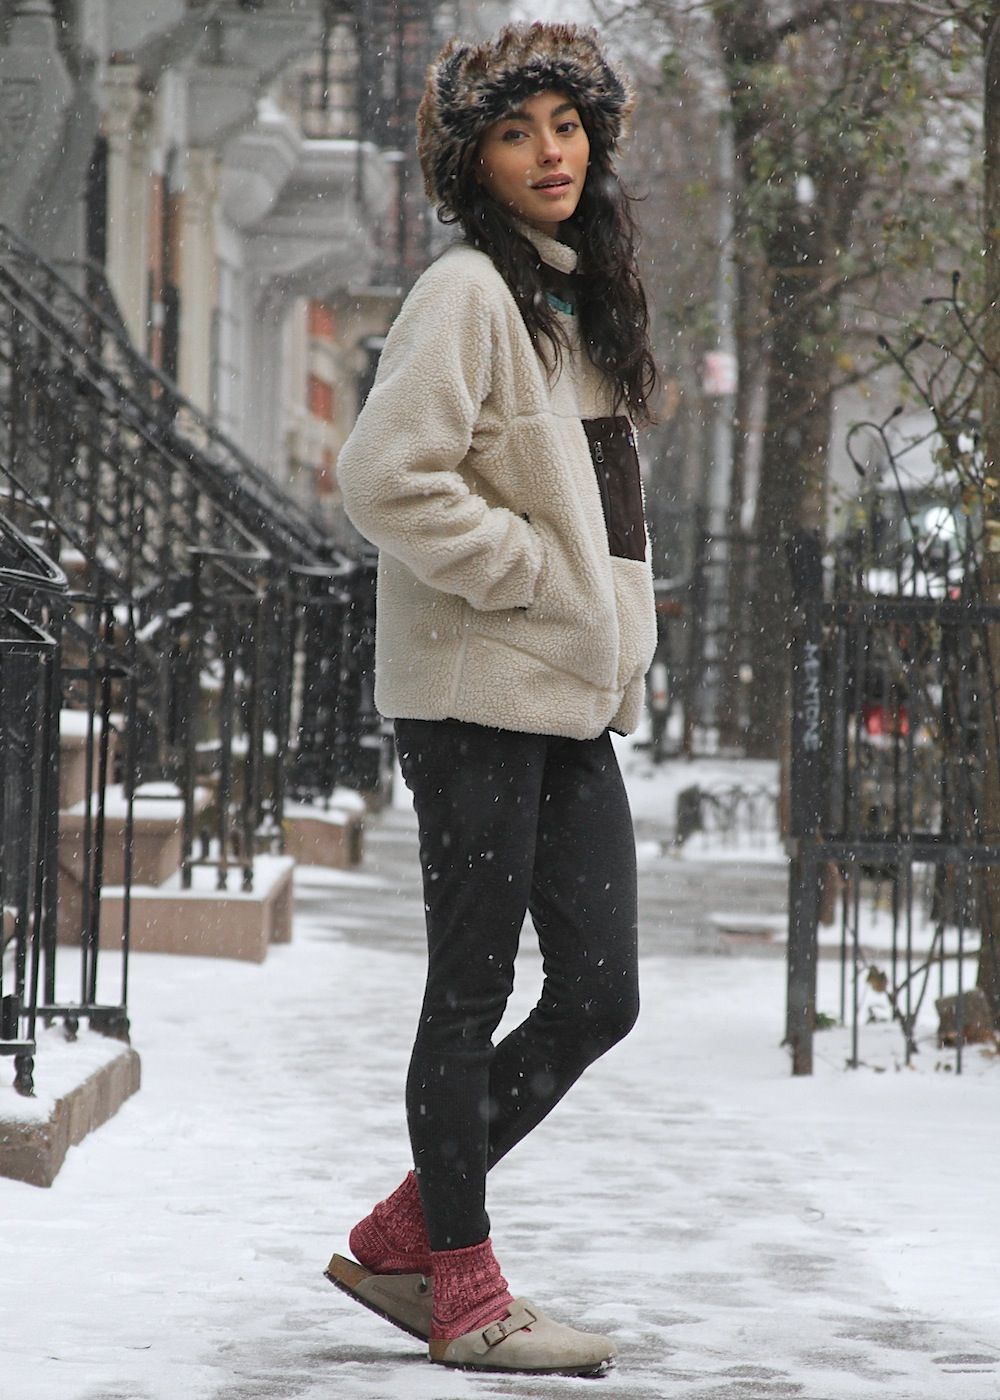 864536c554e So ready for cold weather. Birkenstocks with socks and leggings ...